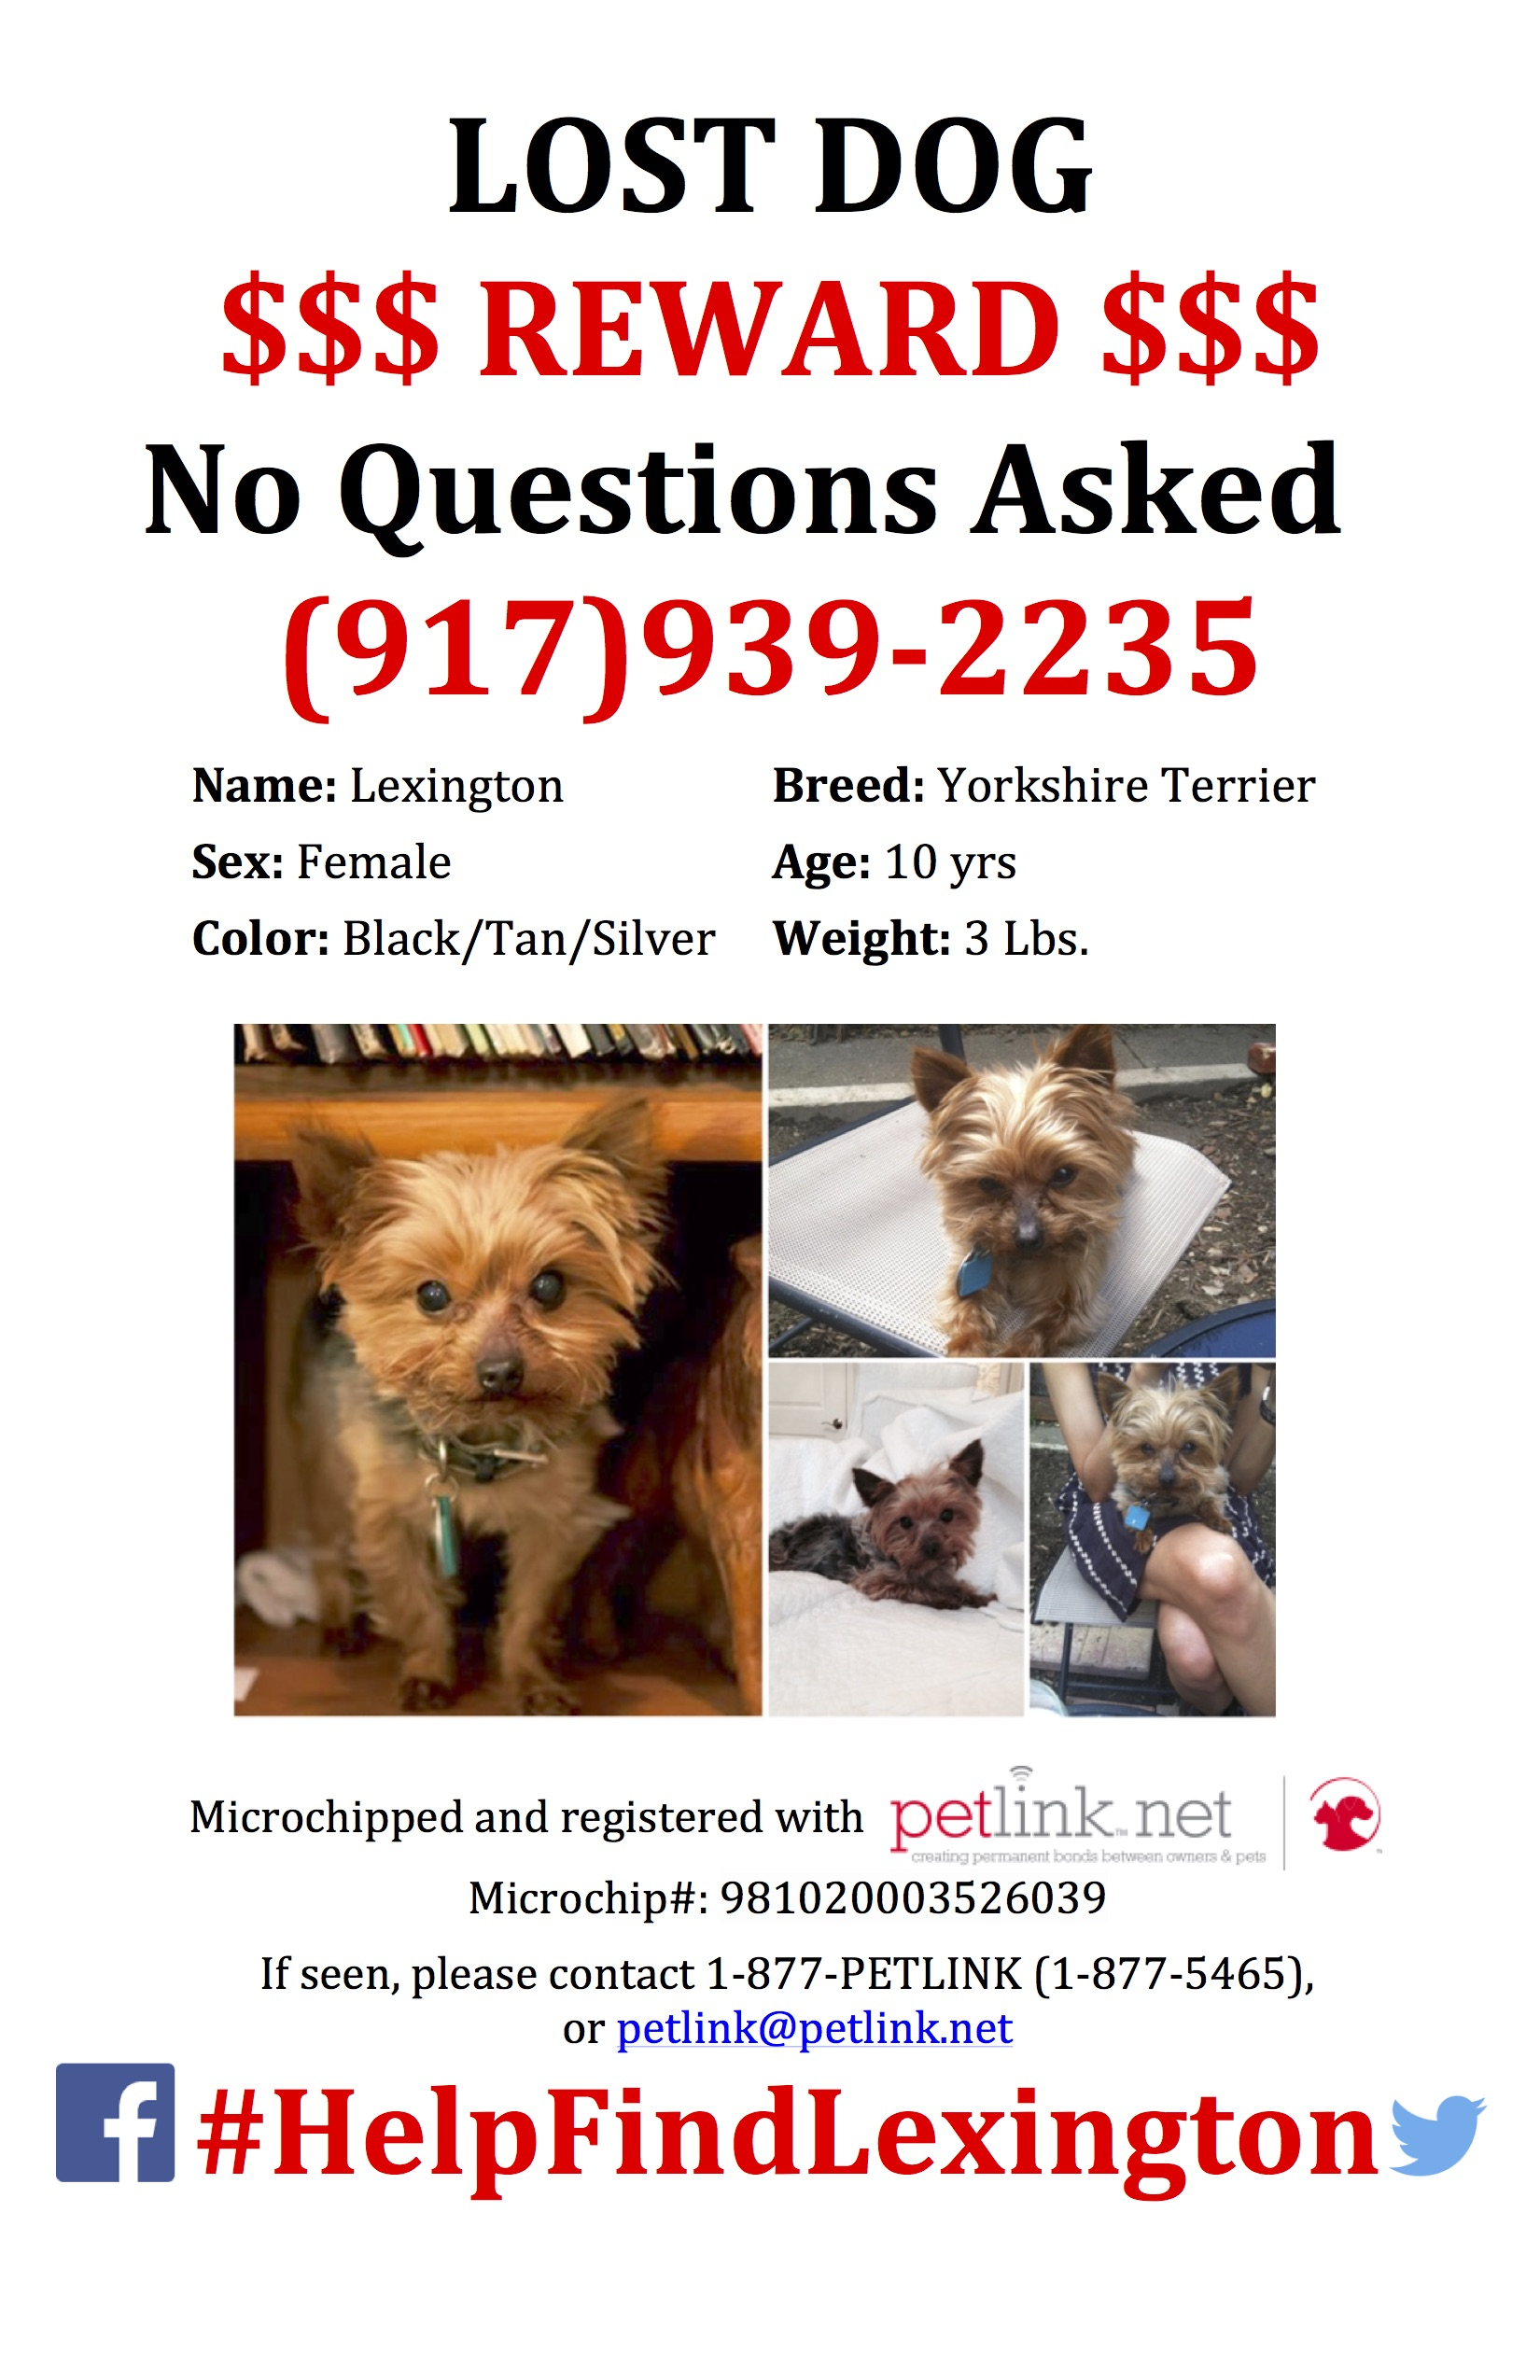 Lost Female 3 lb Yorkie Poster UPDATED